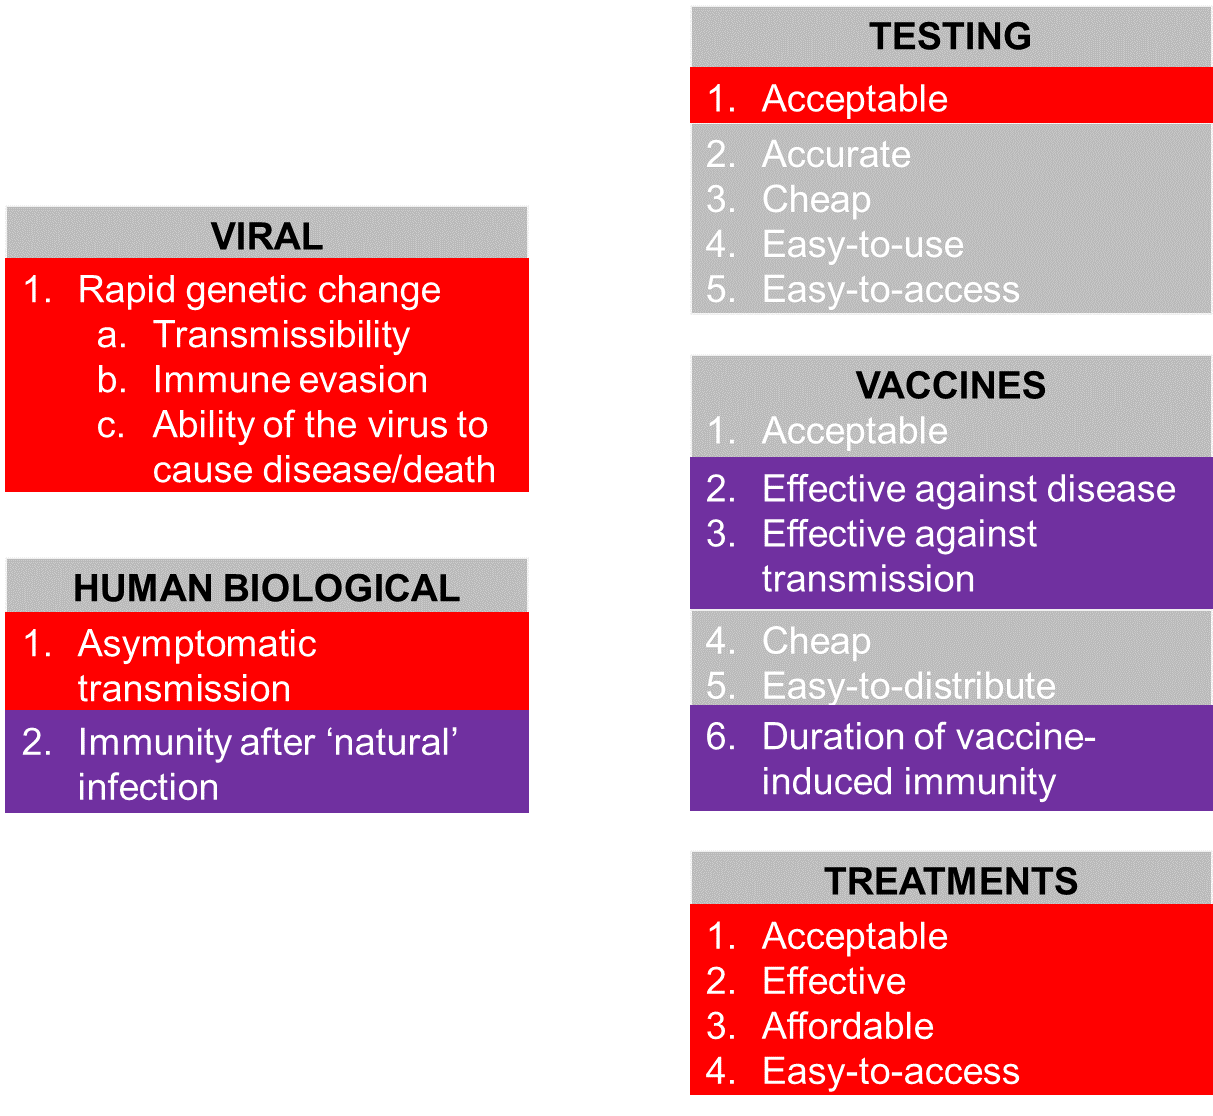 Figure 1 depicts critical factors for the ongoing COVID-19 response. The factors are divided into five categories: viral; human biological; testing; vaccines; treatments. Factors of concern include rapid genetic change; asymptomatic transmission; acceptability of testing; treatments that are acceptable; effective; affordable and easy-to-access. Factors of uncertainty include immunity after natural infection; whether vaccines are effective against the disease and transmissions and the duration of vaccine-induced immunity. Known factors that are not of concern include whether testing is accessible, cheap, easy-to-use and easy-to-access; and whether vaccines are acceptable, cheap and easy-to-distribute.